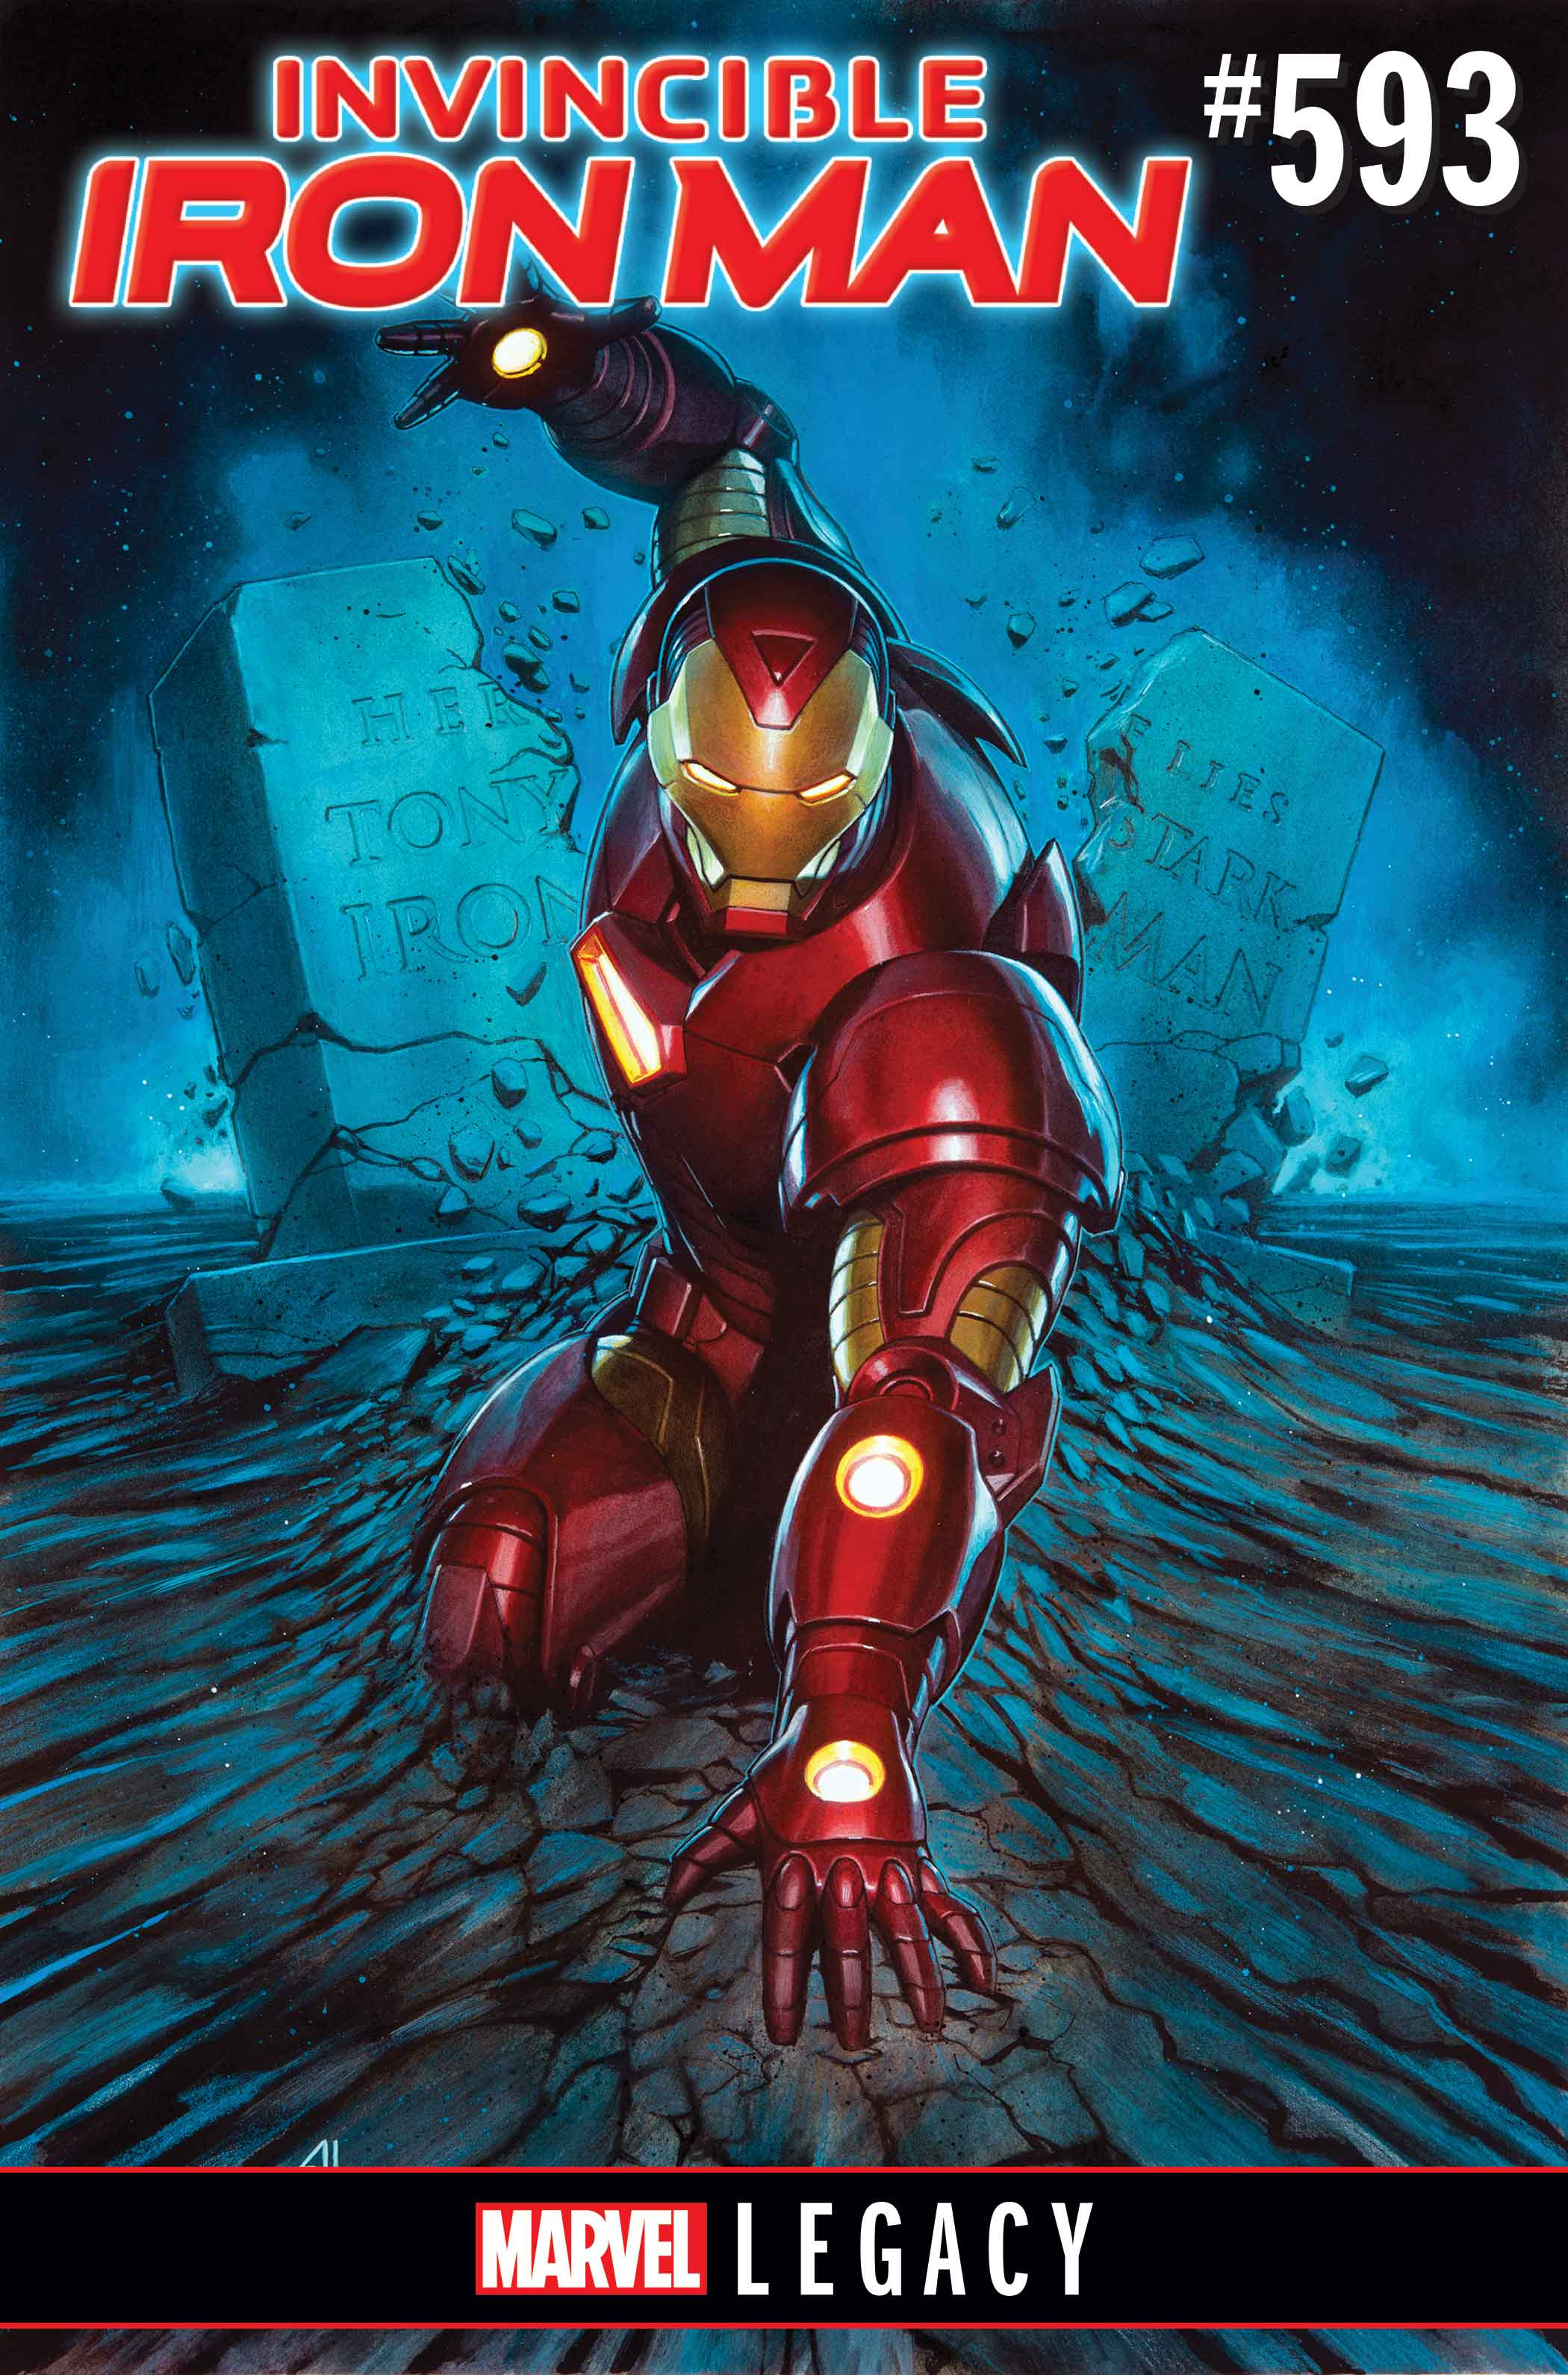 INVINCIBLE IRON MAN LEGACY CVR